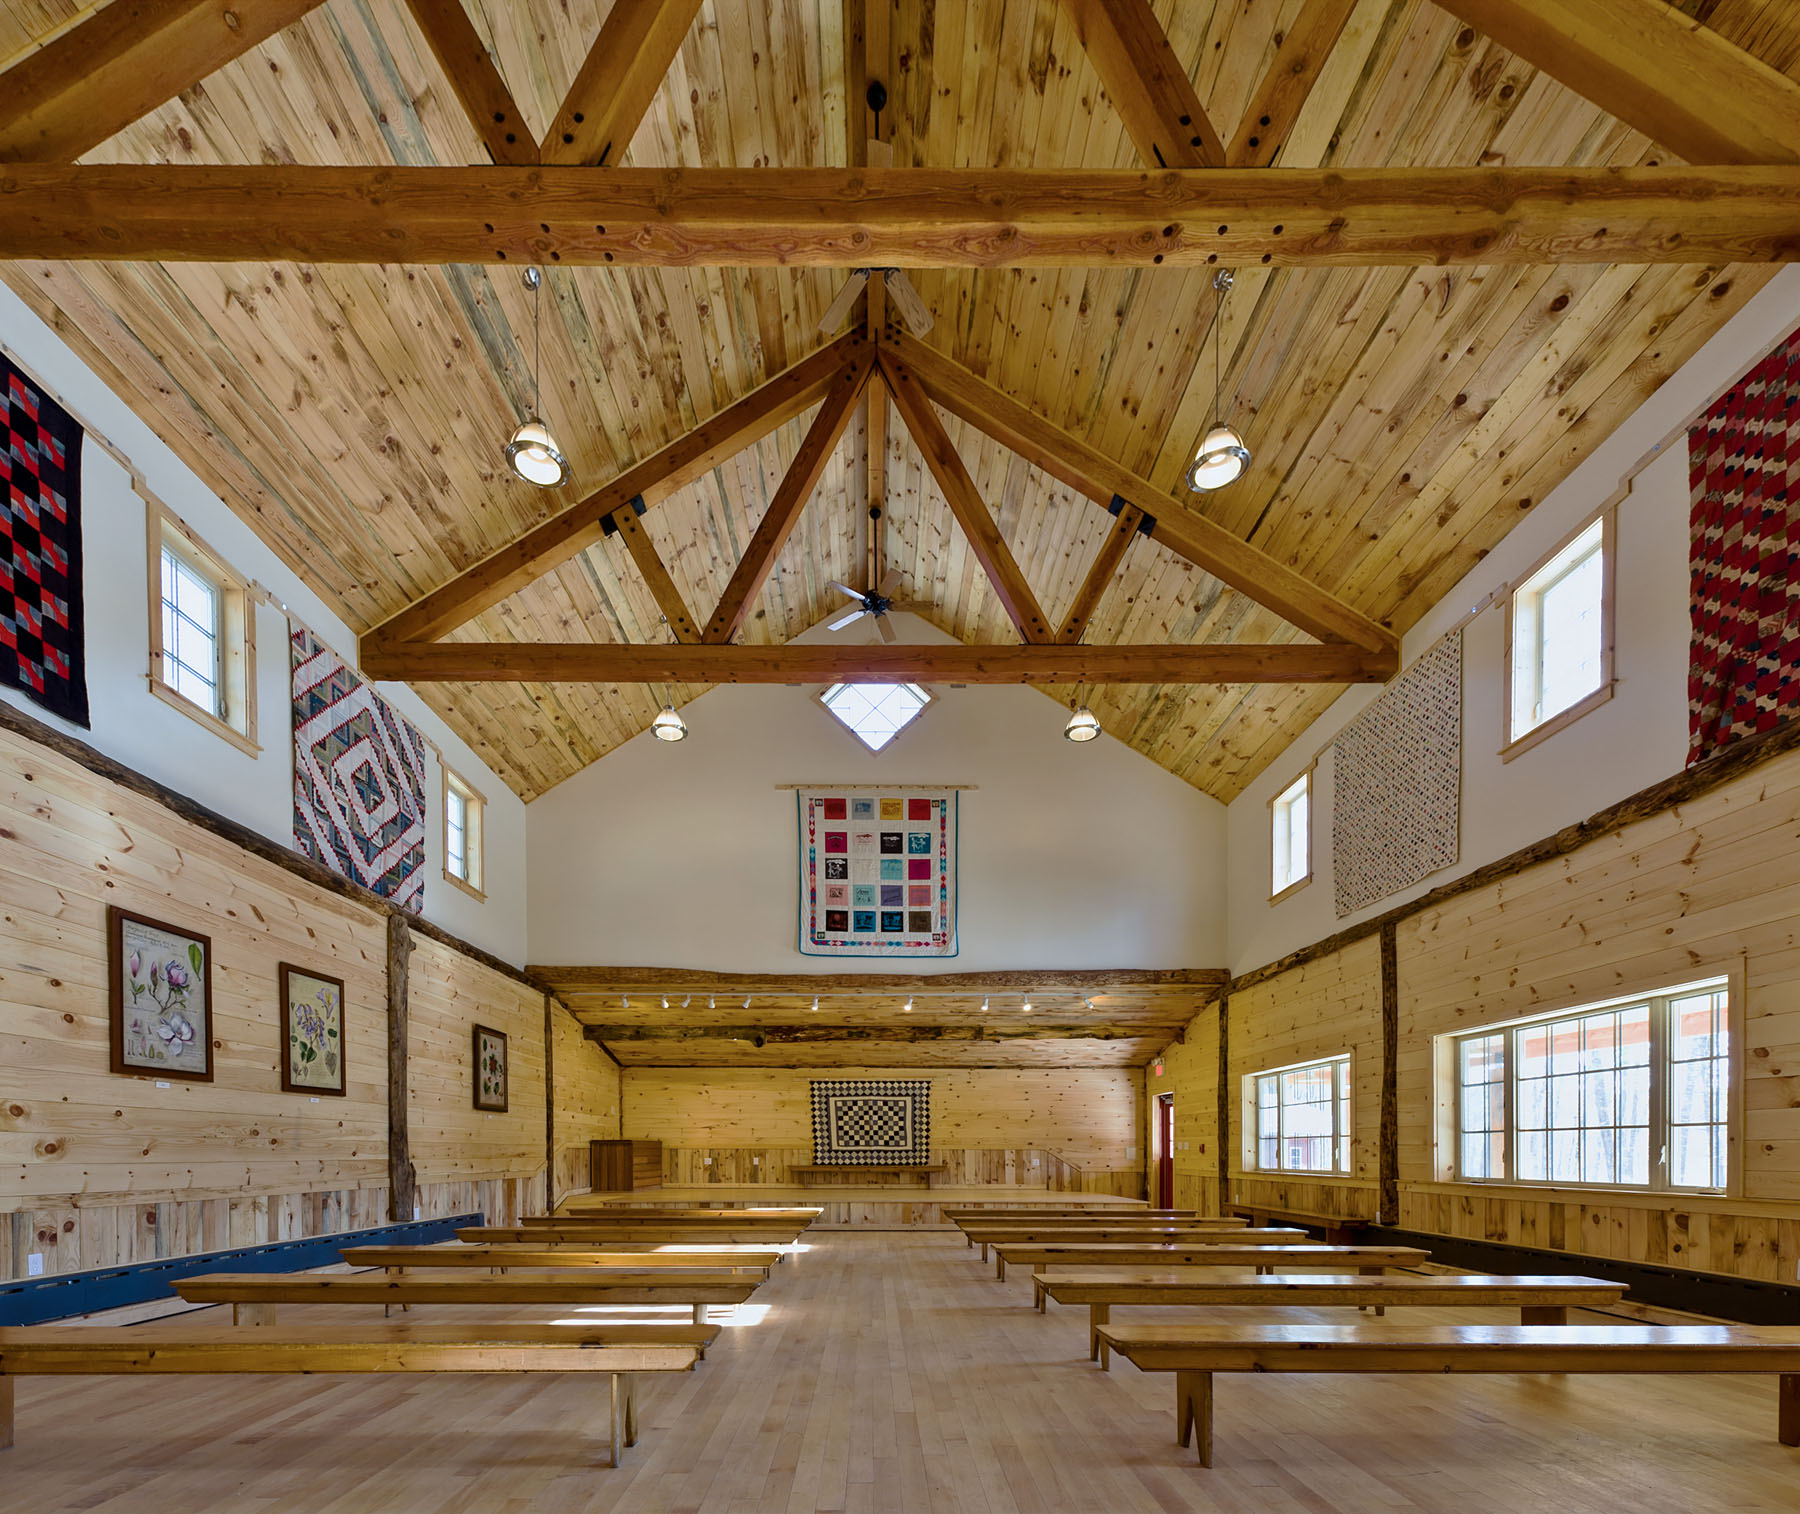 Performing Arts Barn